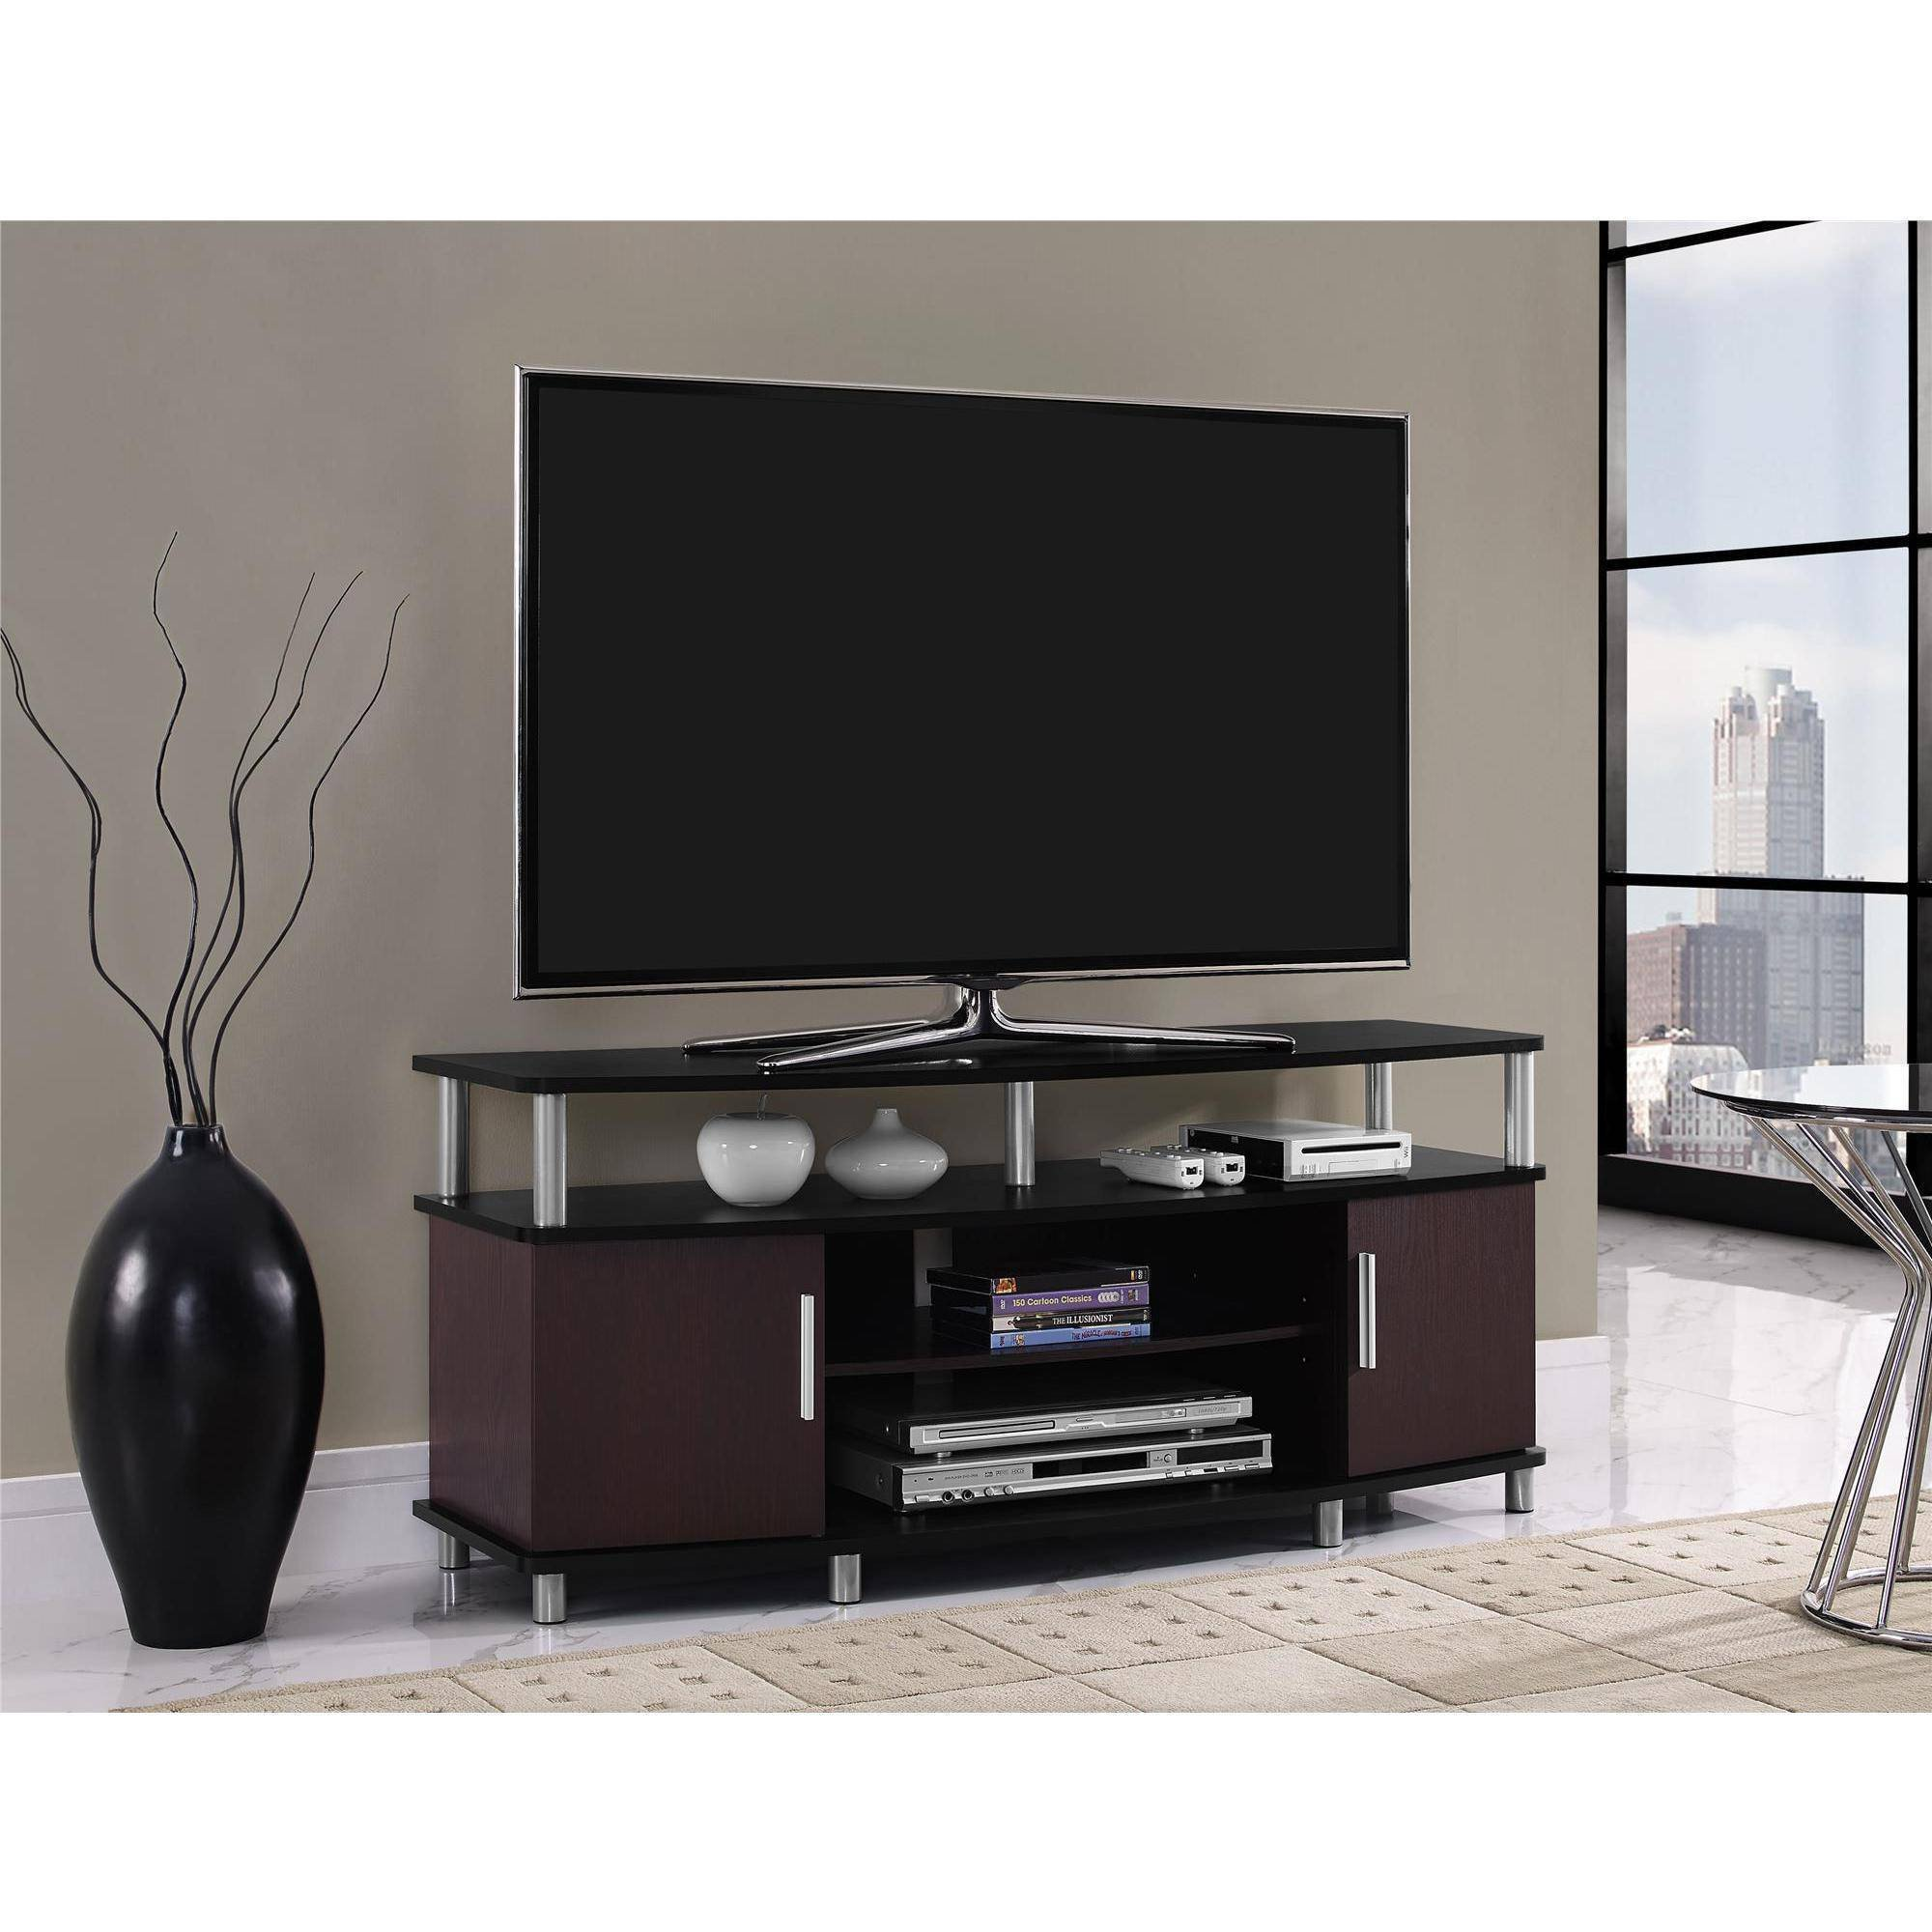 "Tall Tv Stand for Bedroom Fresh Carson Tv Stand for Tvs Up to 50"" Multiple Finishes Walmart"